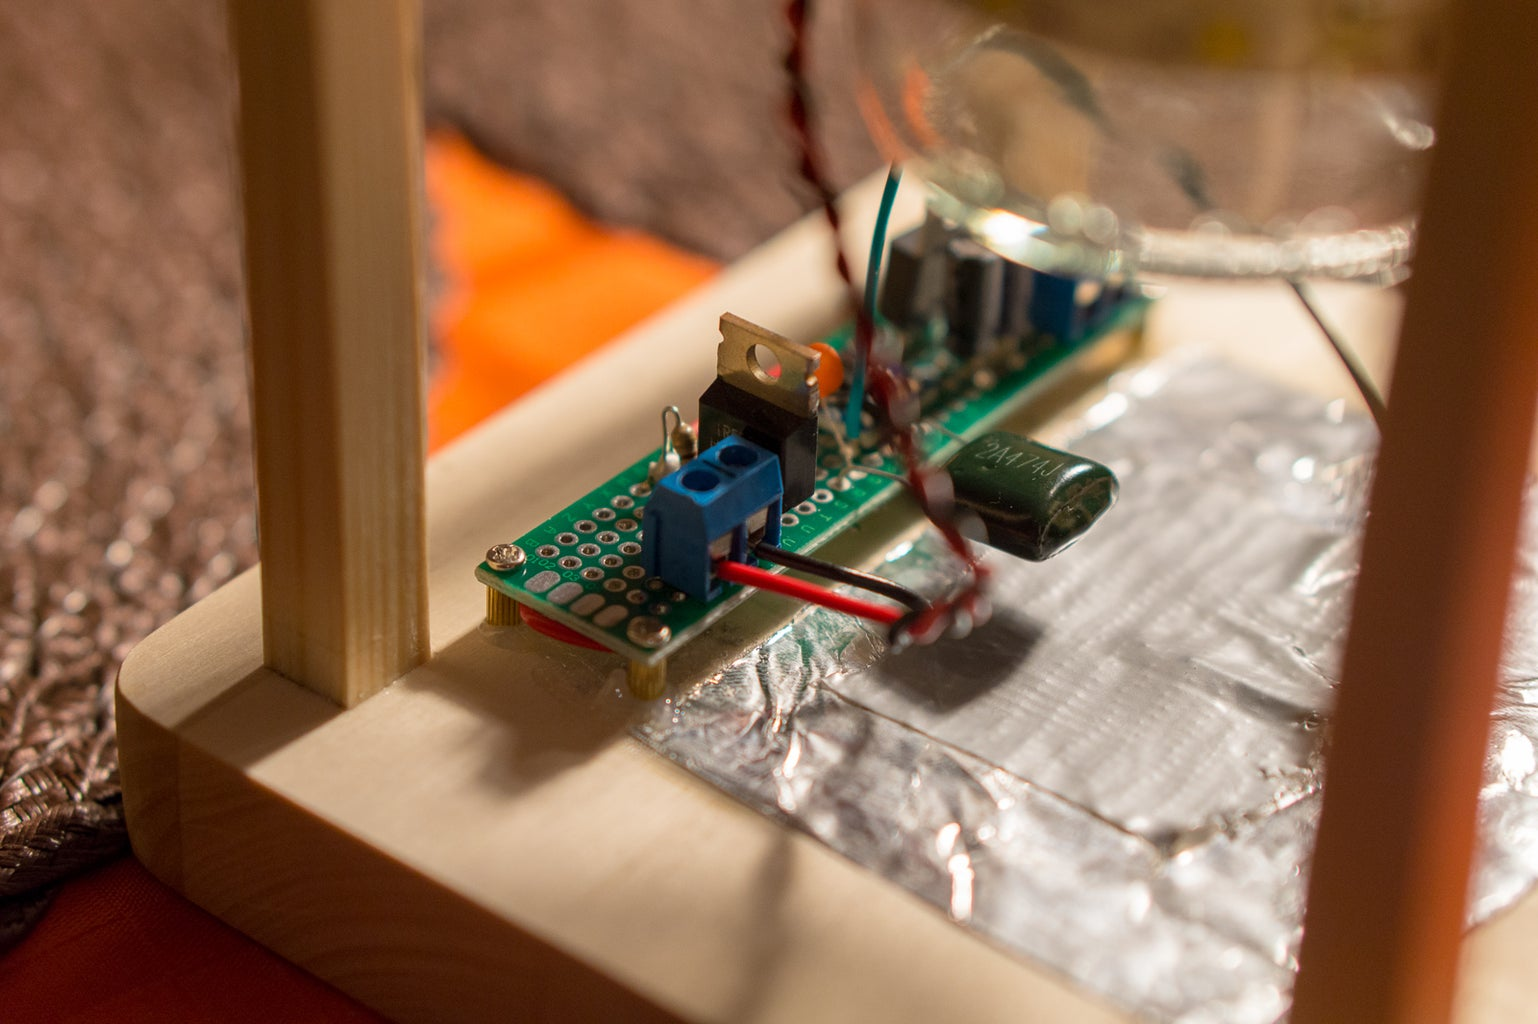 Install All Electronics in the Lantern